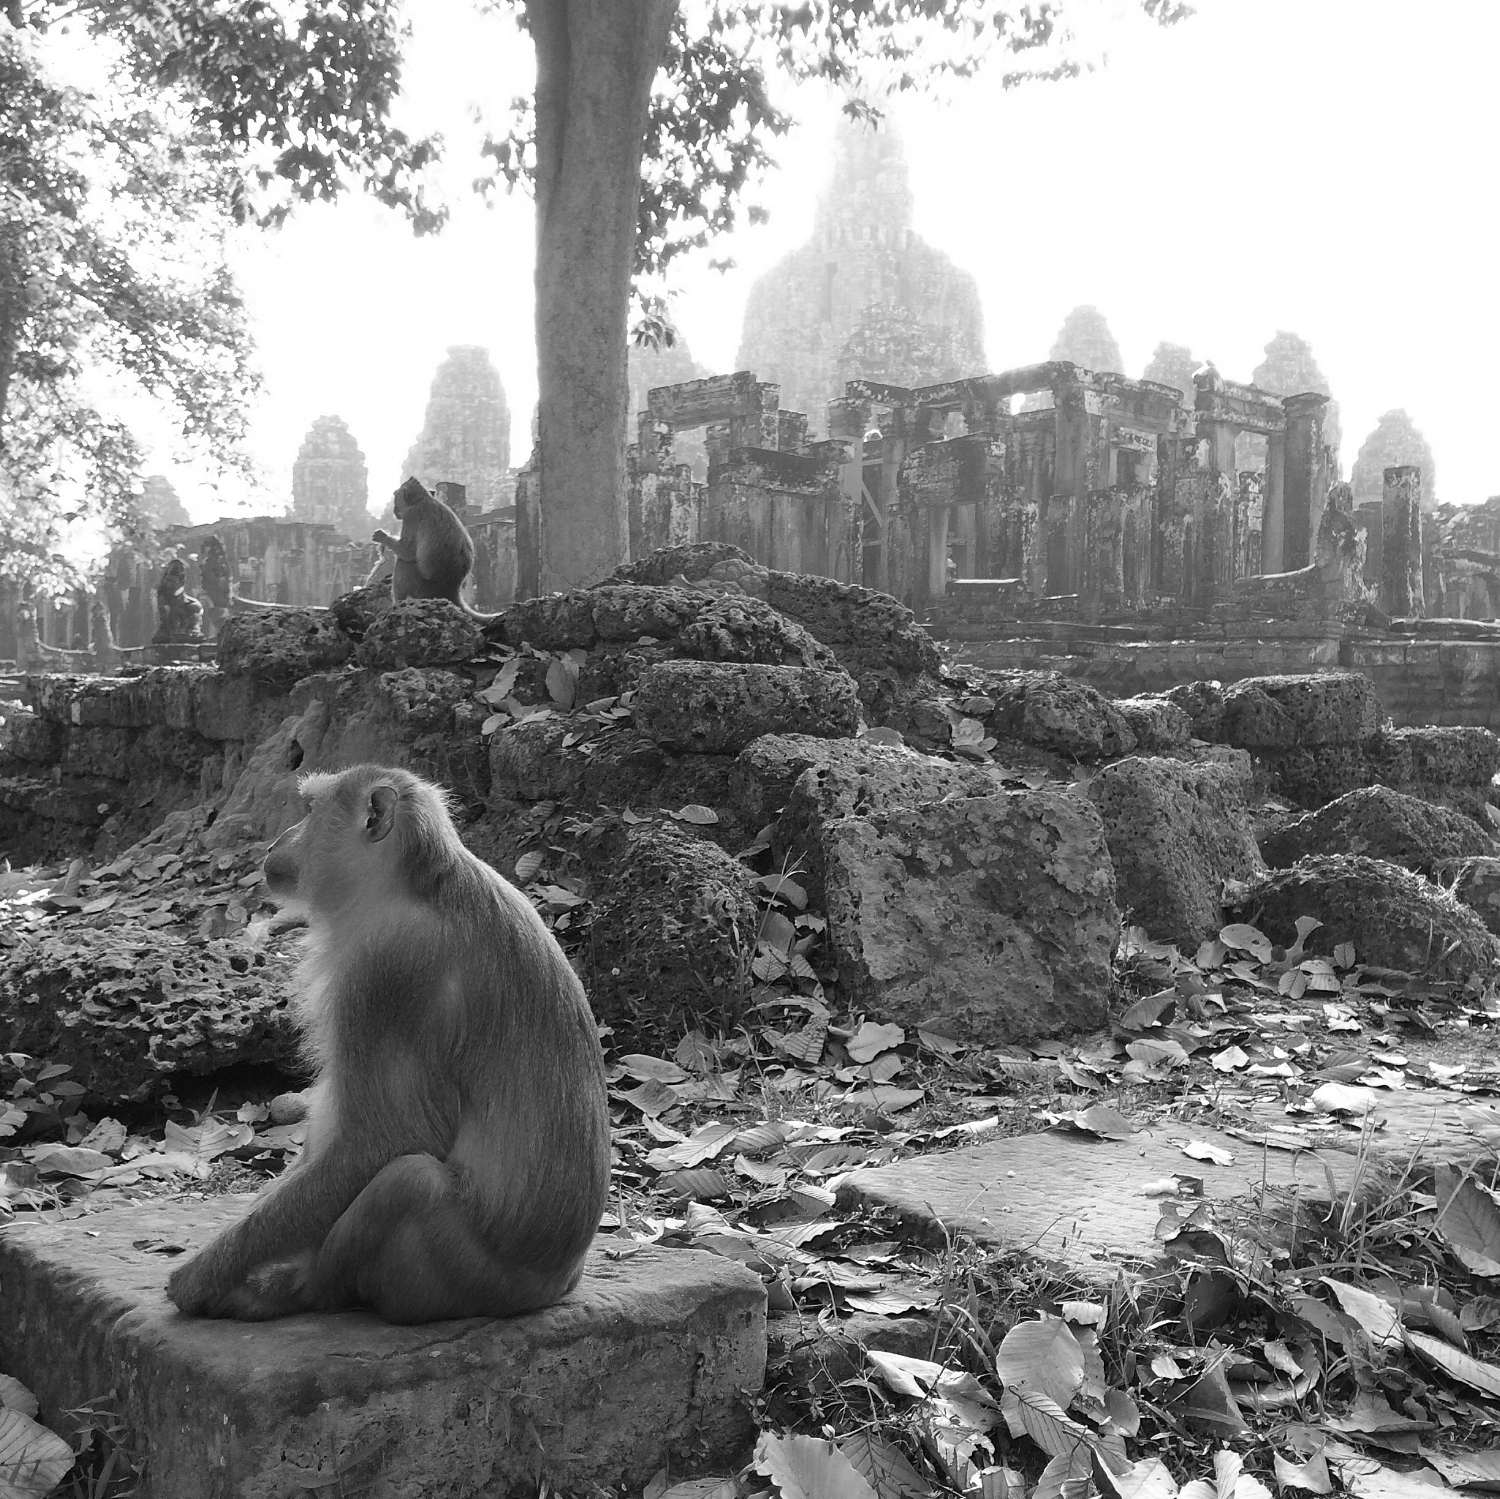 So many amazing things to see, Angkor Wat could turn anyone into a professional photographer